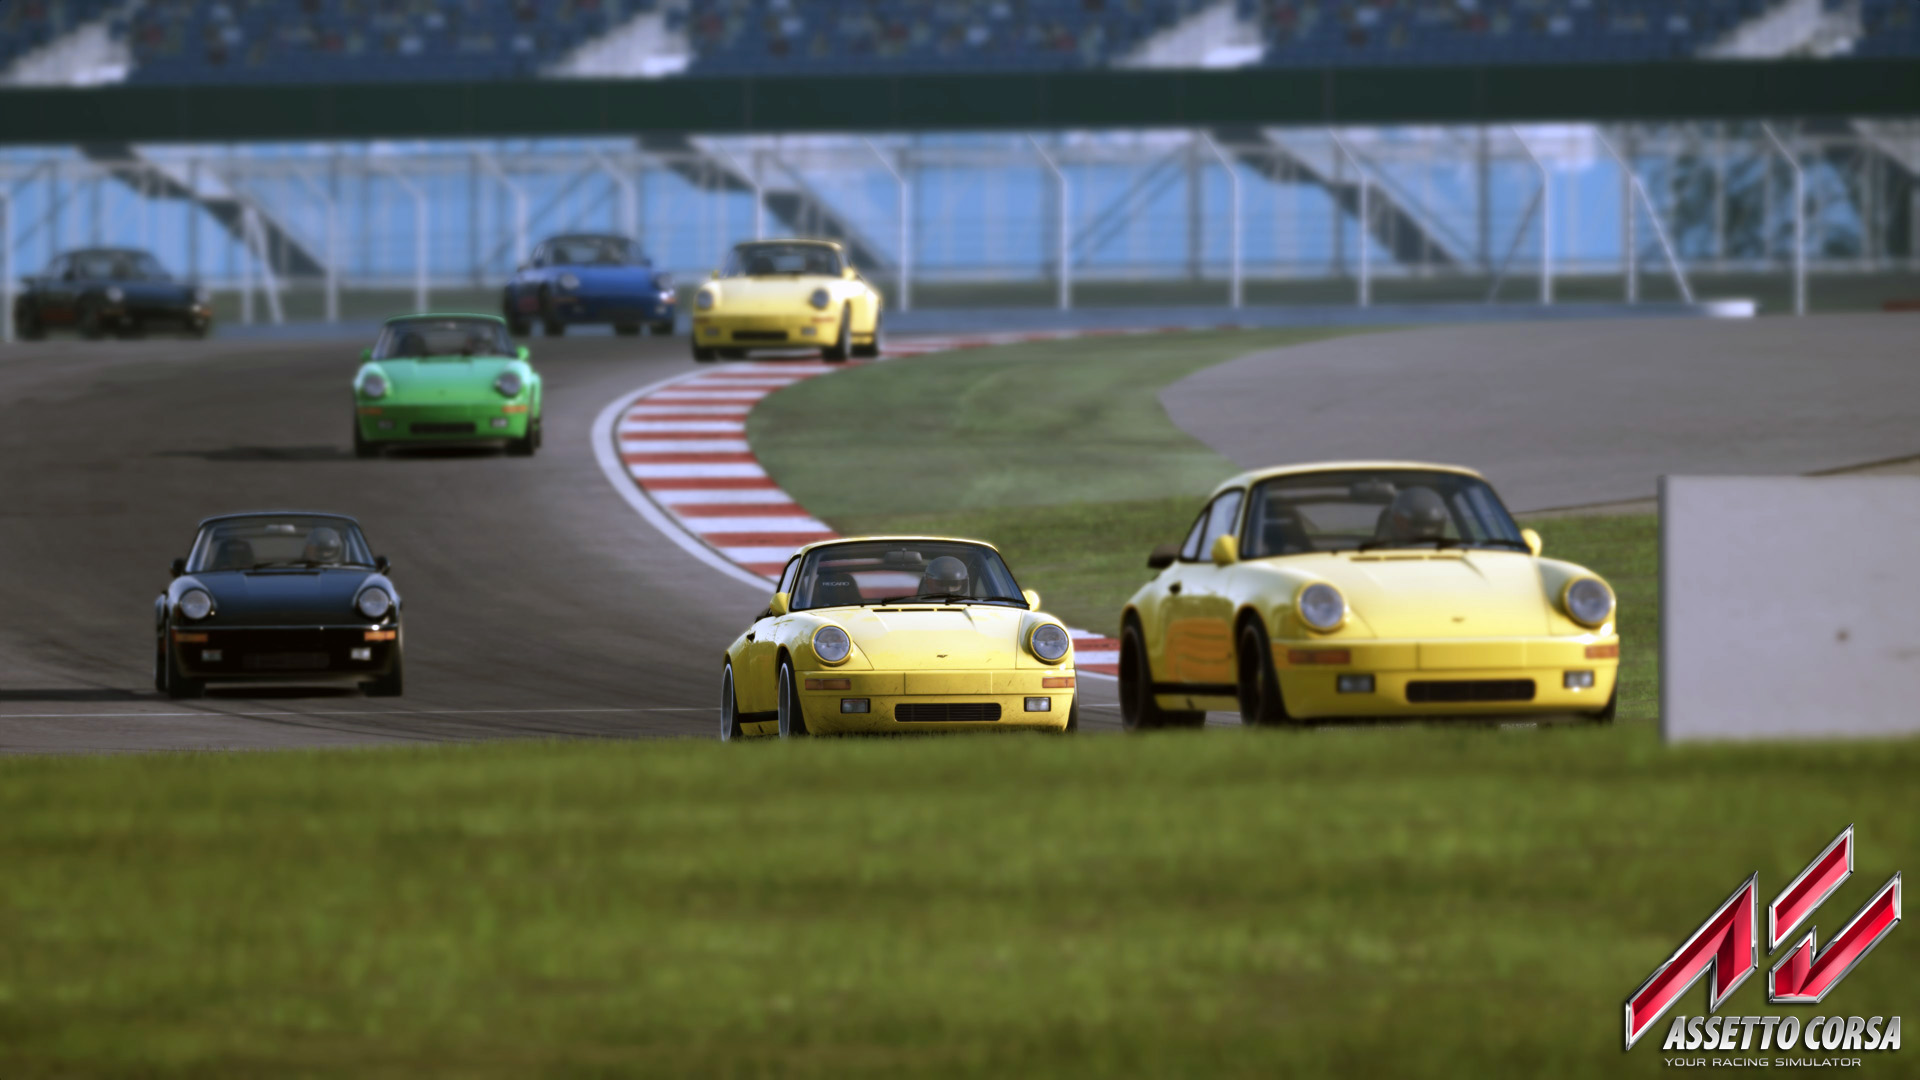 Assetto Corsa ESPAÑOL PC Full Incluye Update v1.0.1 (CODEX) 7